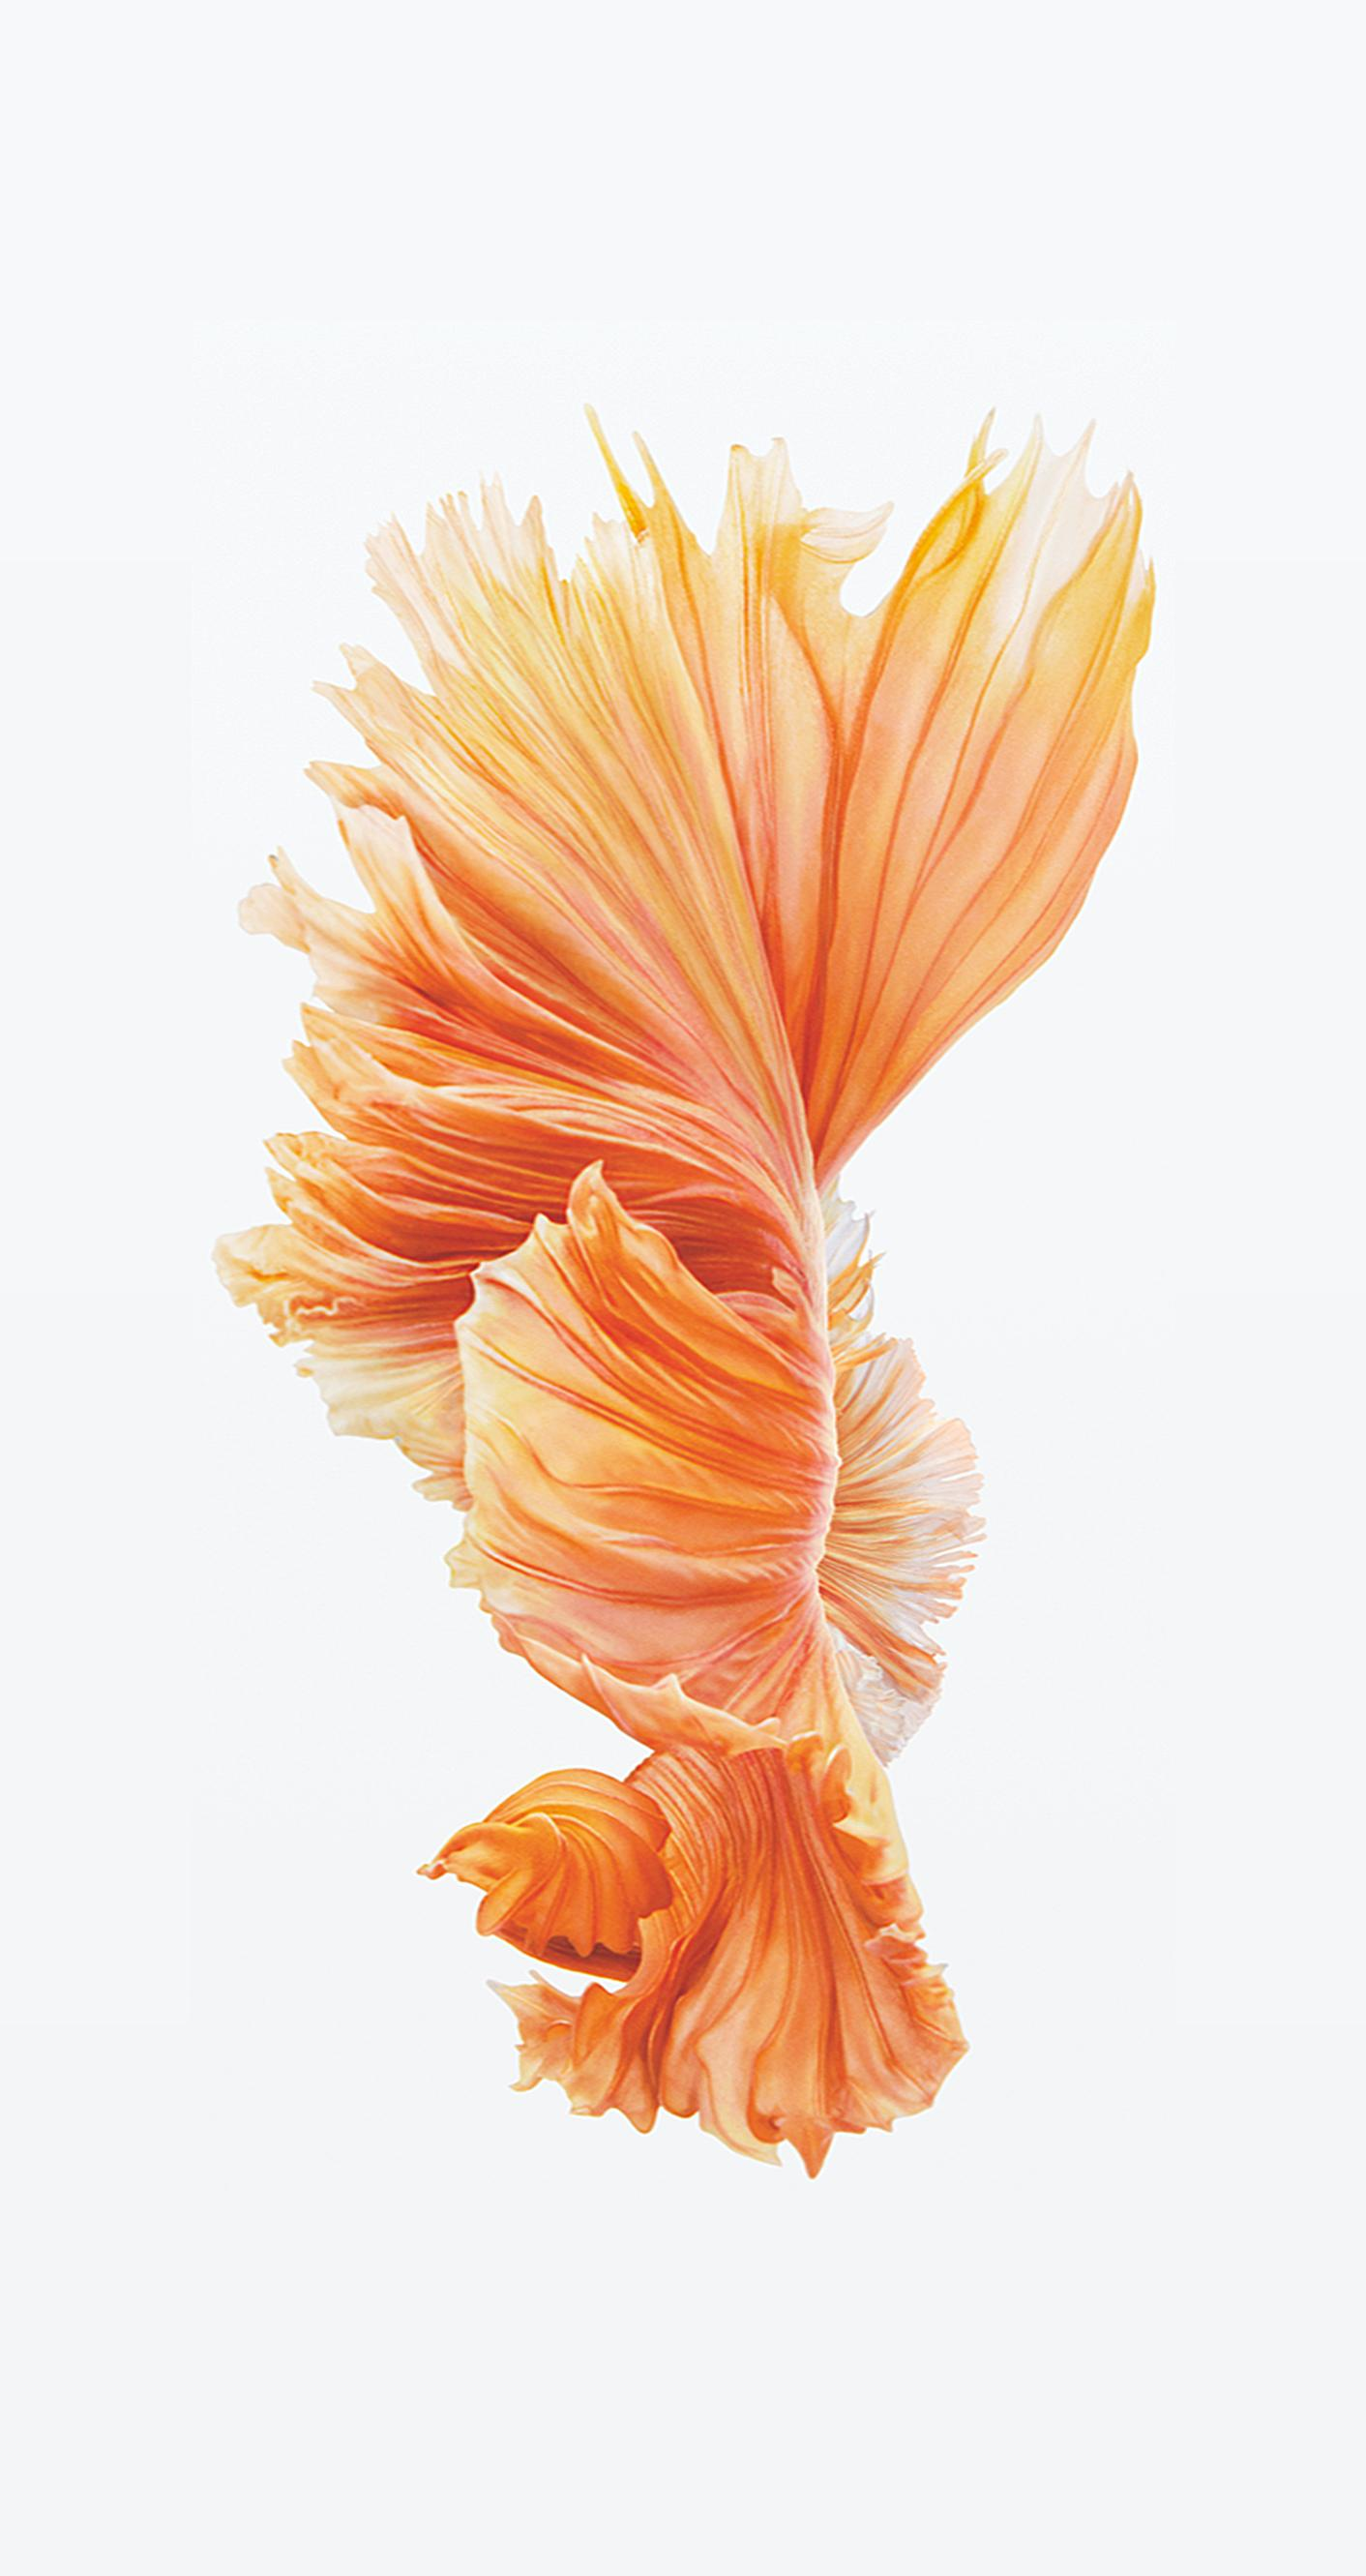 Download iPhone 6s6s Plus Wallpapers 1412x2662